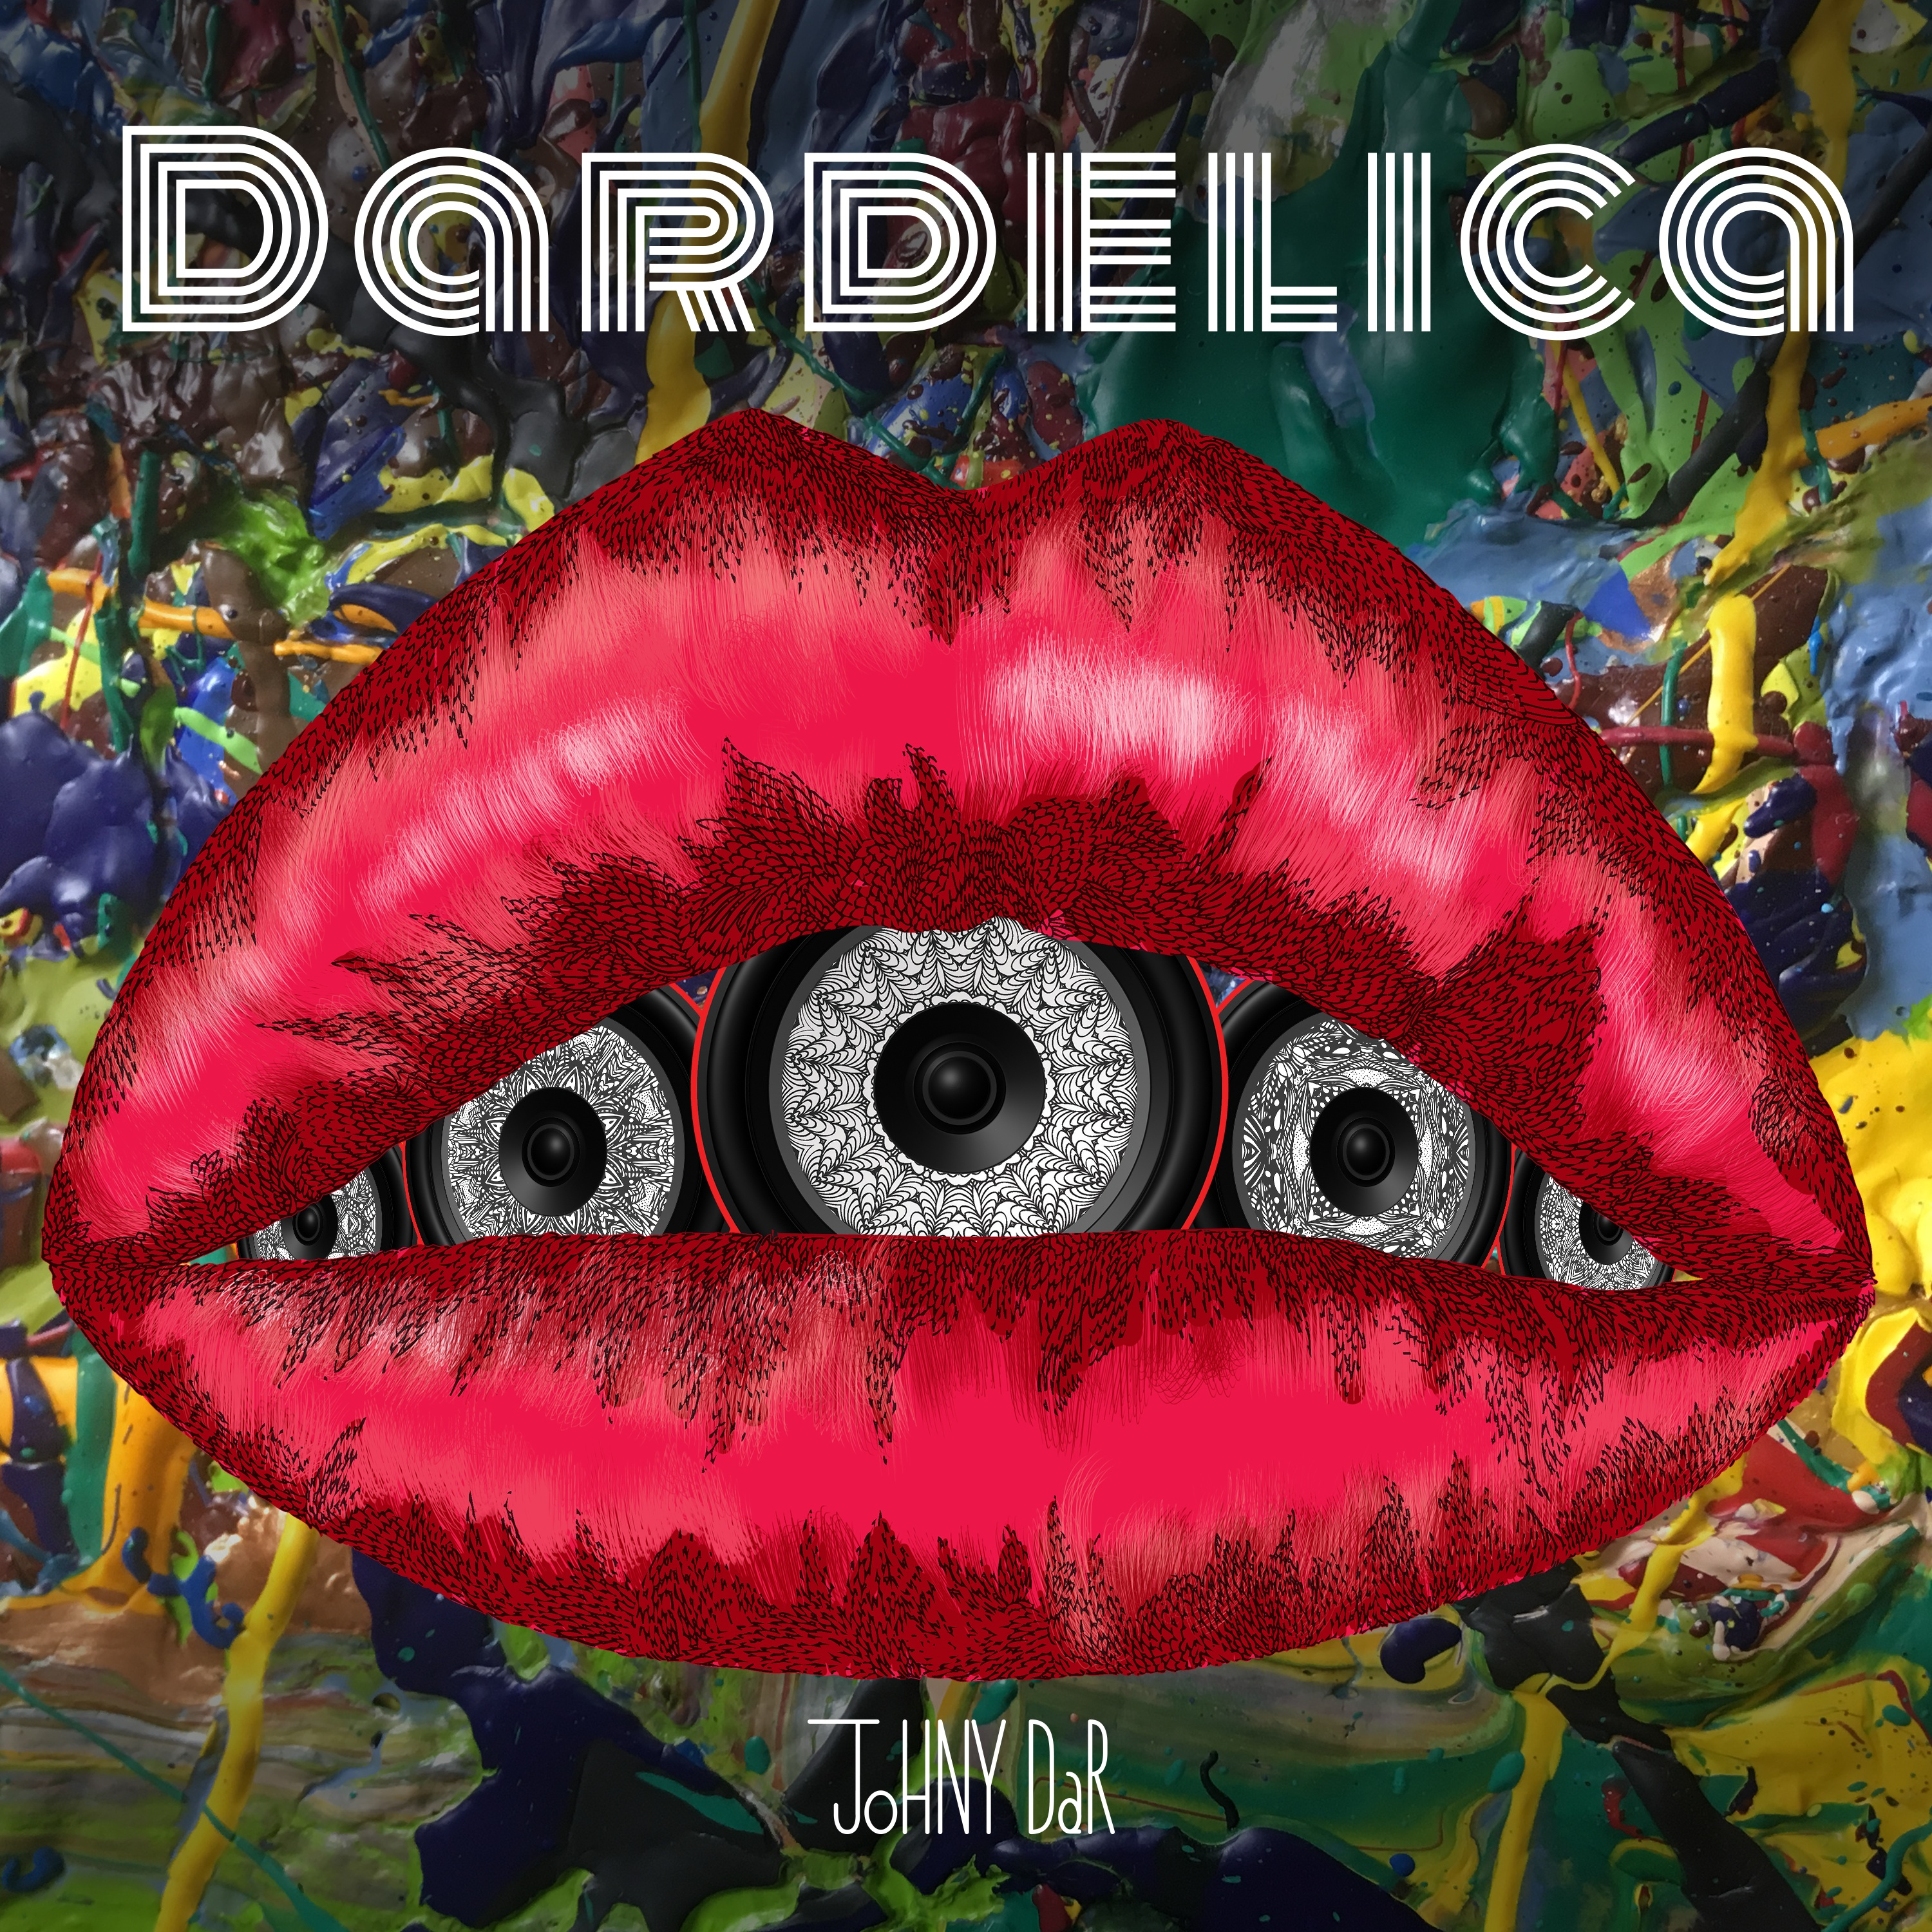 Dardelica Album Cover